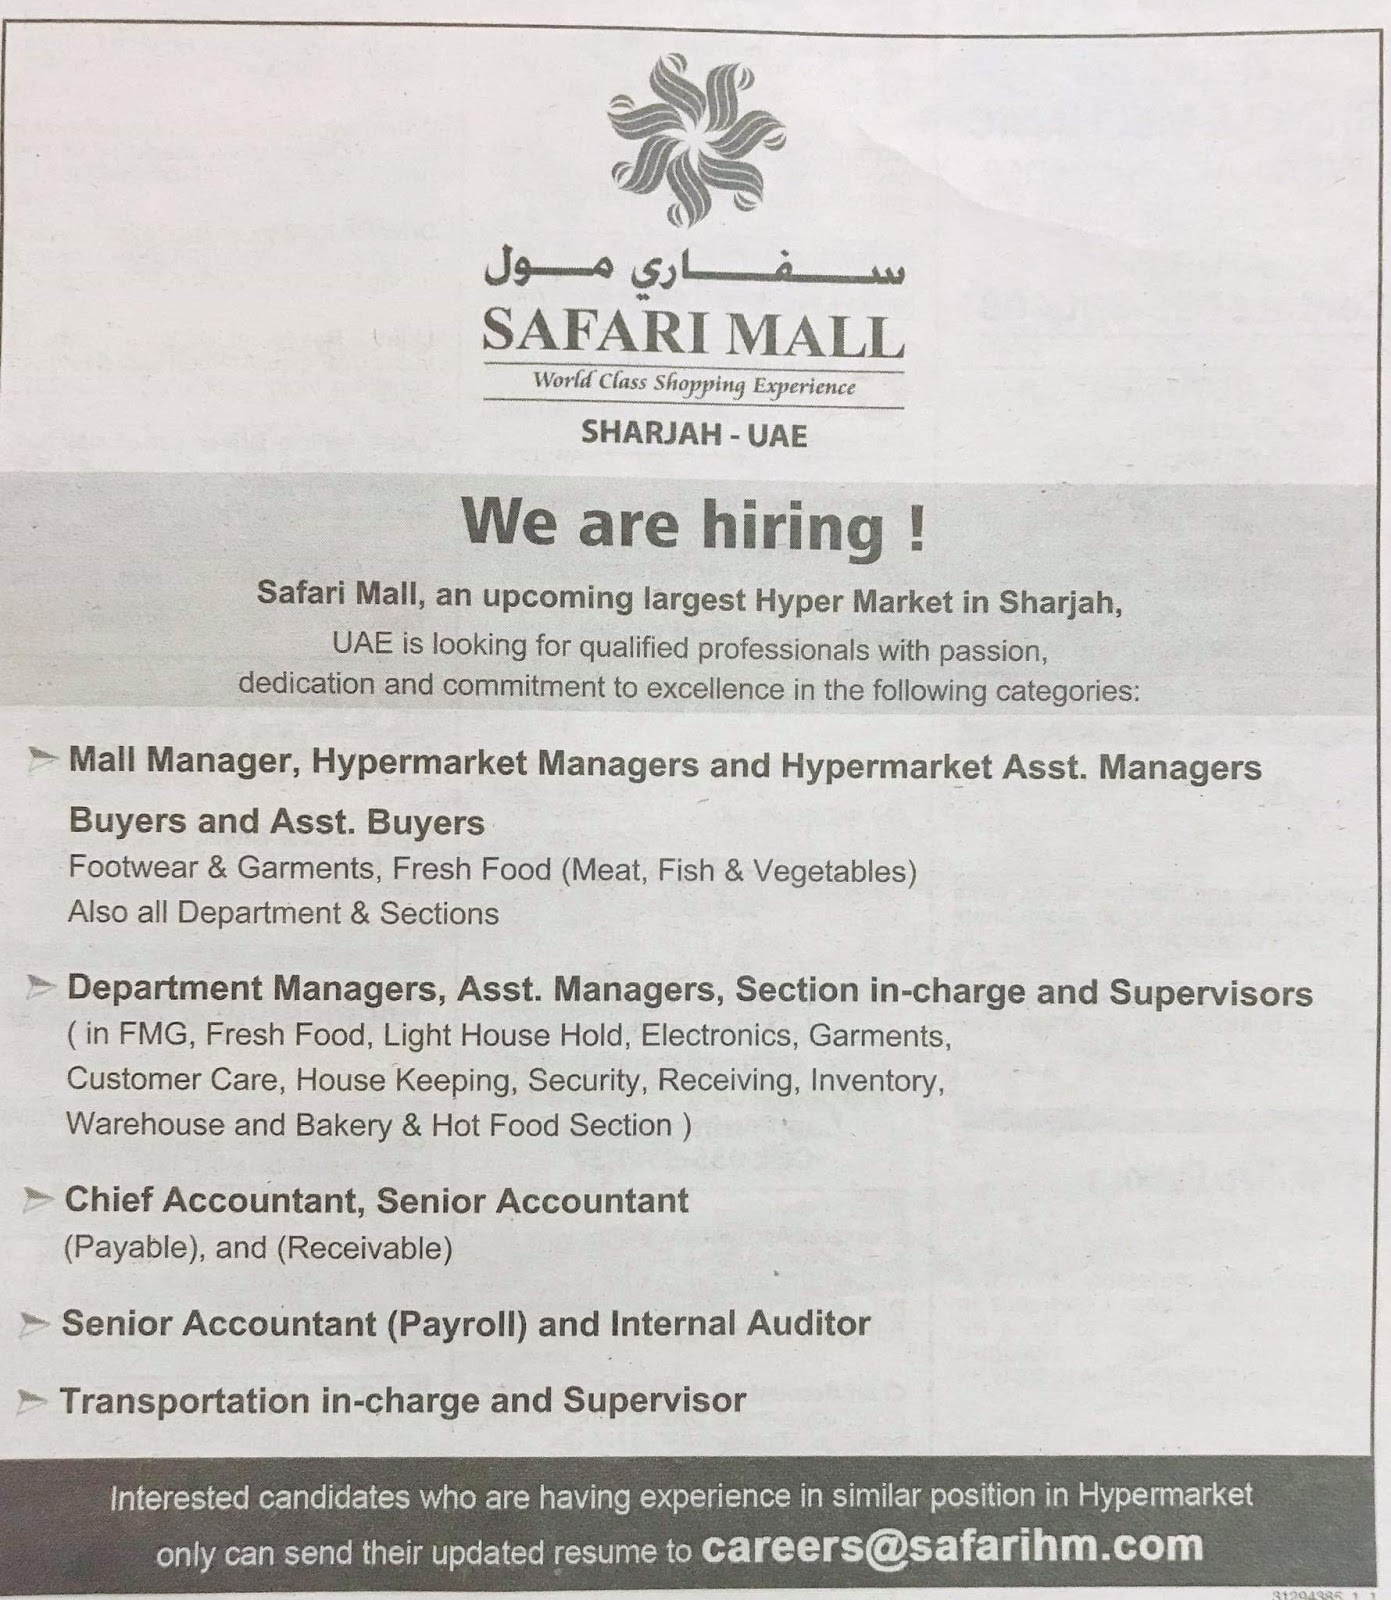 We are Hiring SAFARI MALL an upcoming largest hyper market in